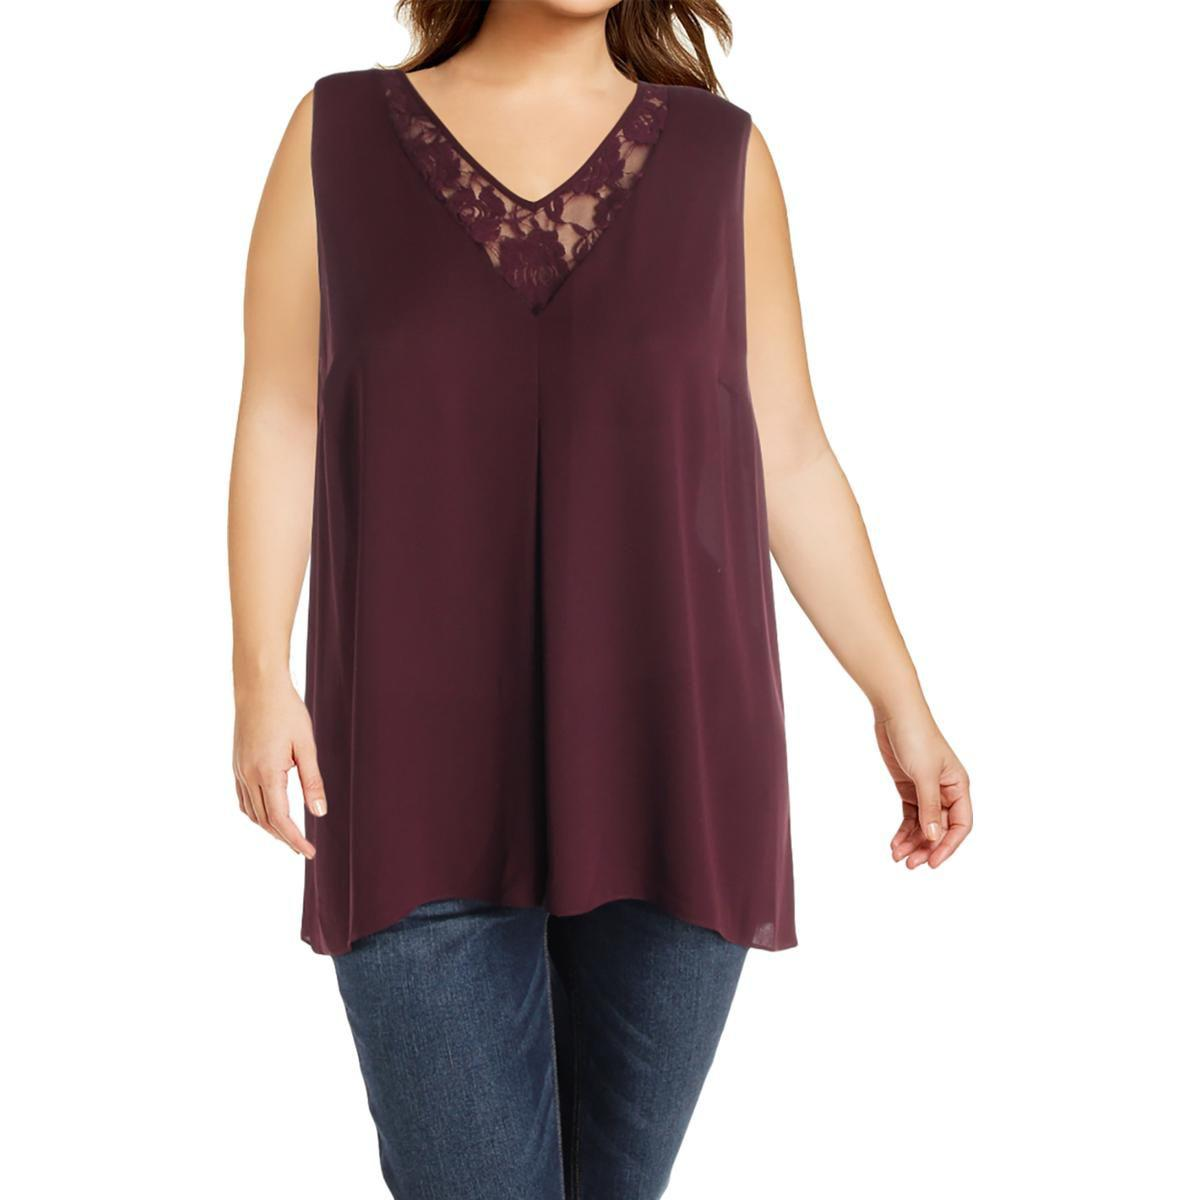 667f8e7db0548f Lyst - Vince Camuto Womens Plus Lace Inset Sheer Tank Top in Purple